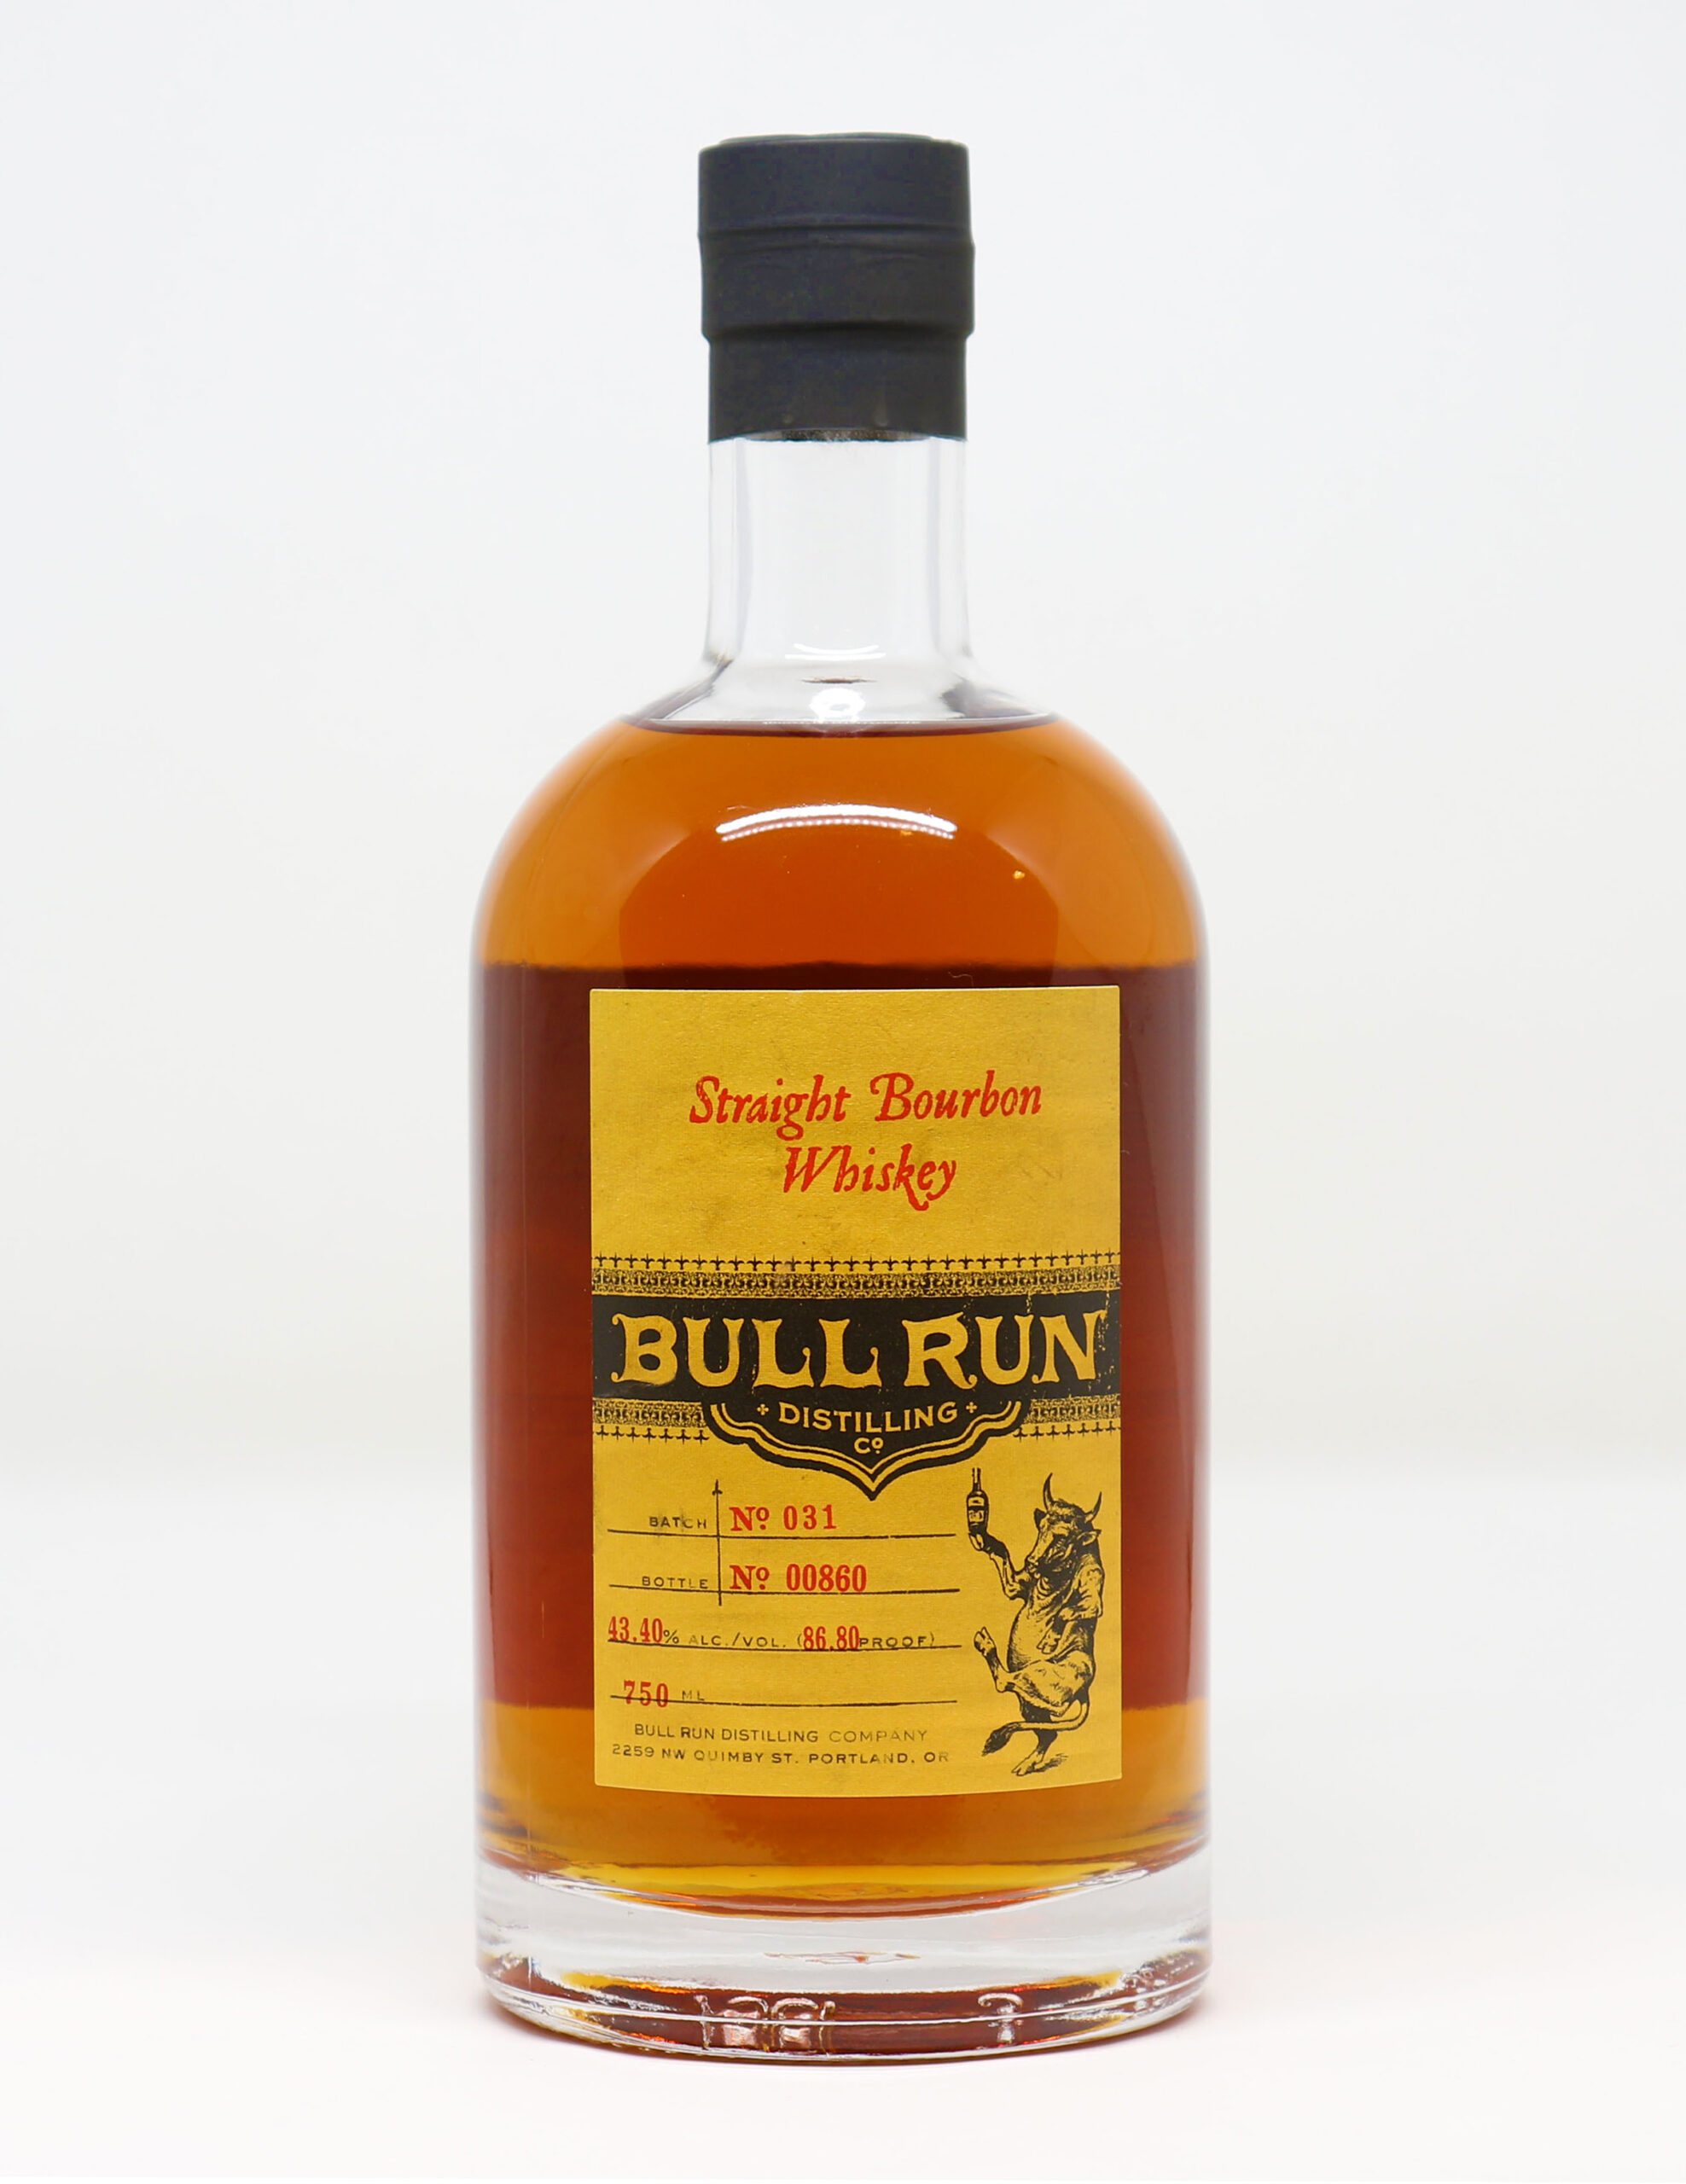 Bull Run – Straight Bourbon Whiskey